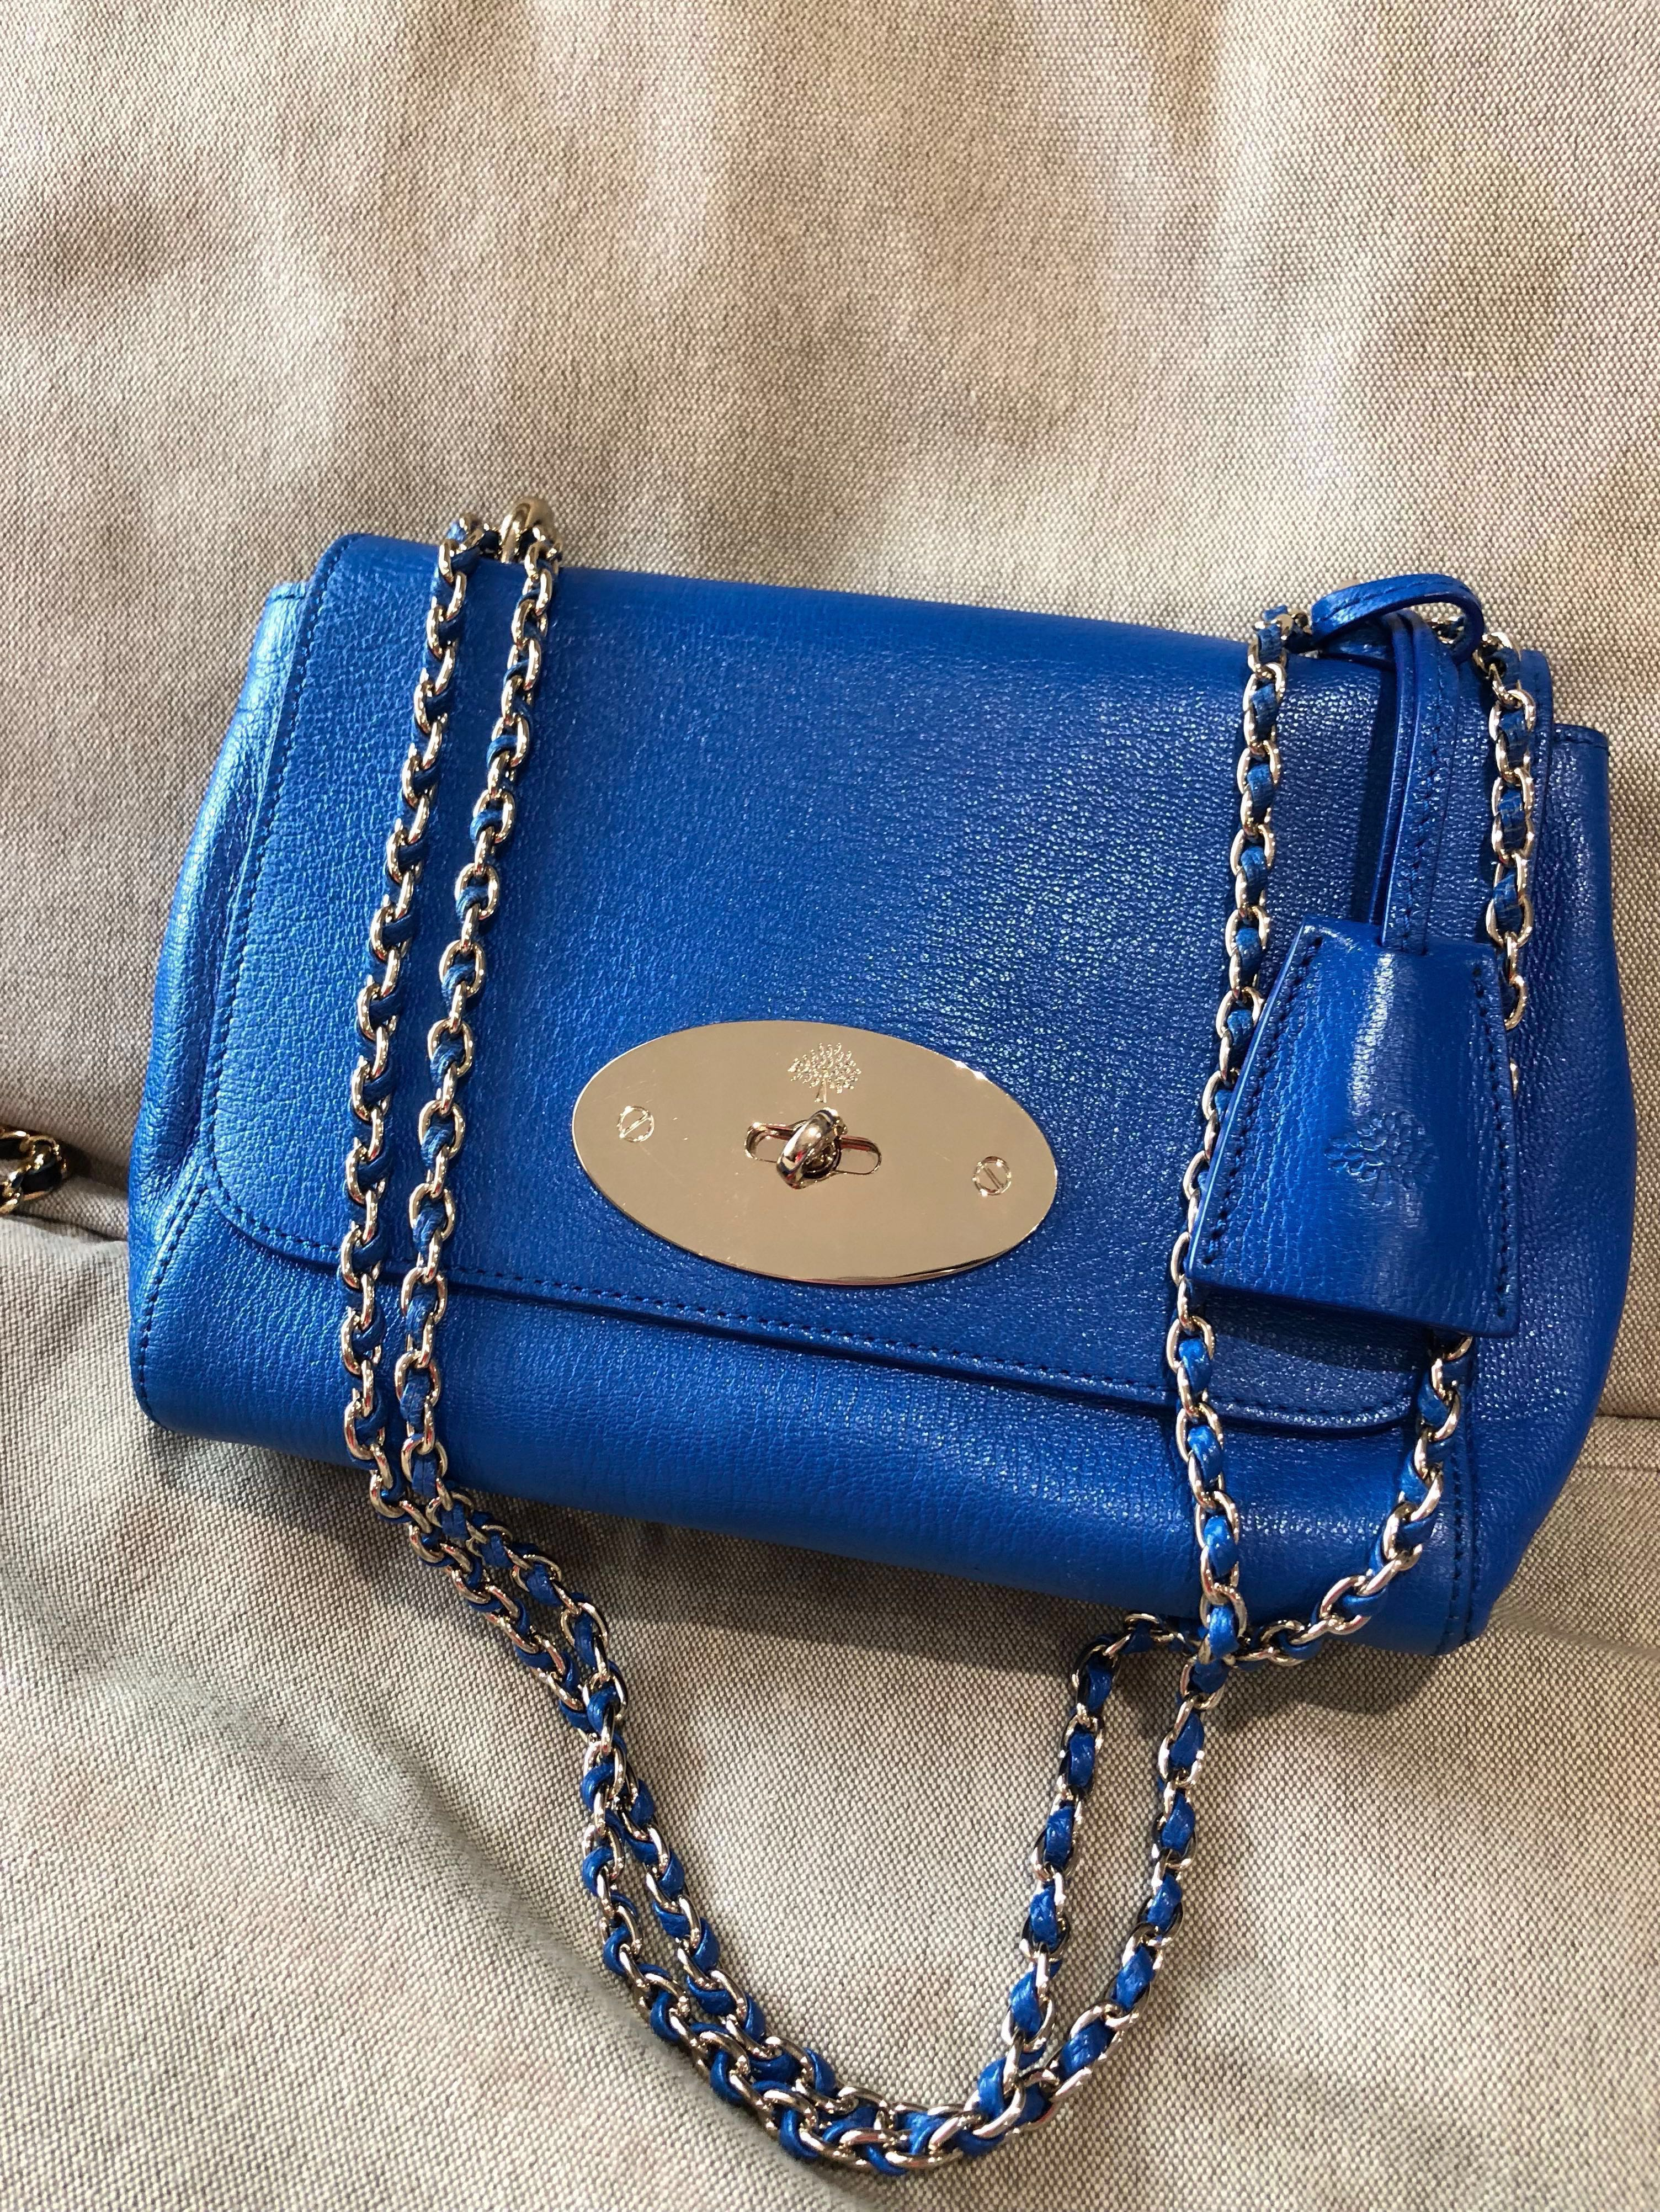 c0d38c9e43 Mulberry small lily in cobalt blue